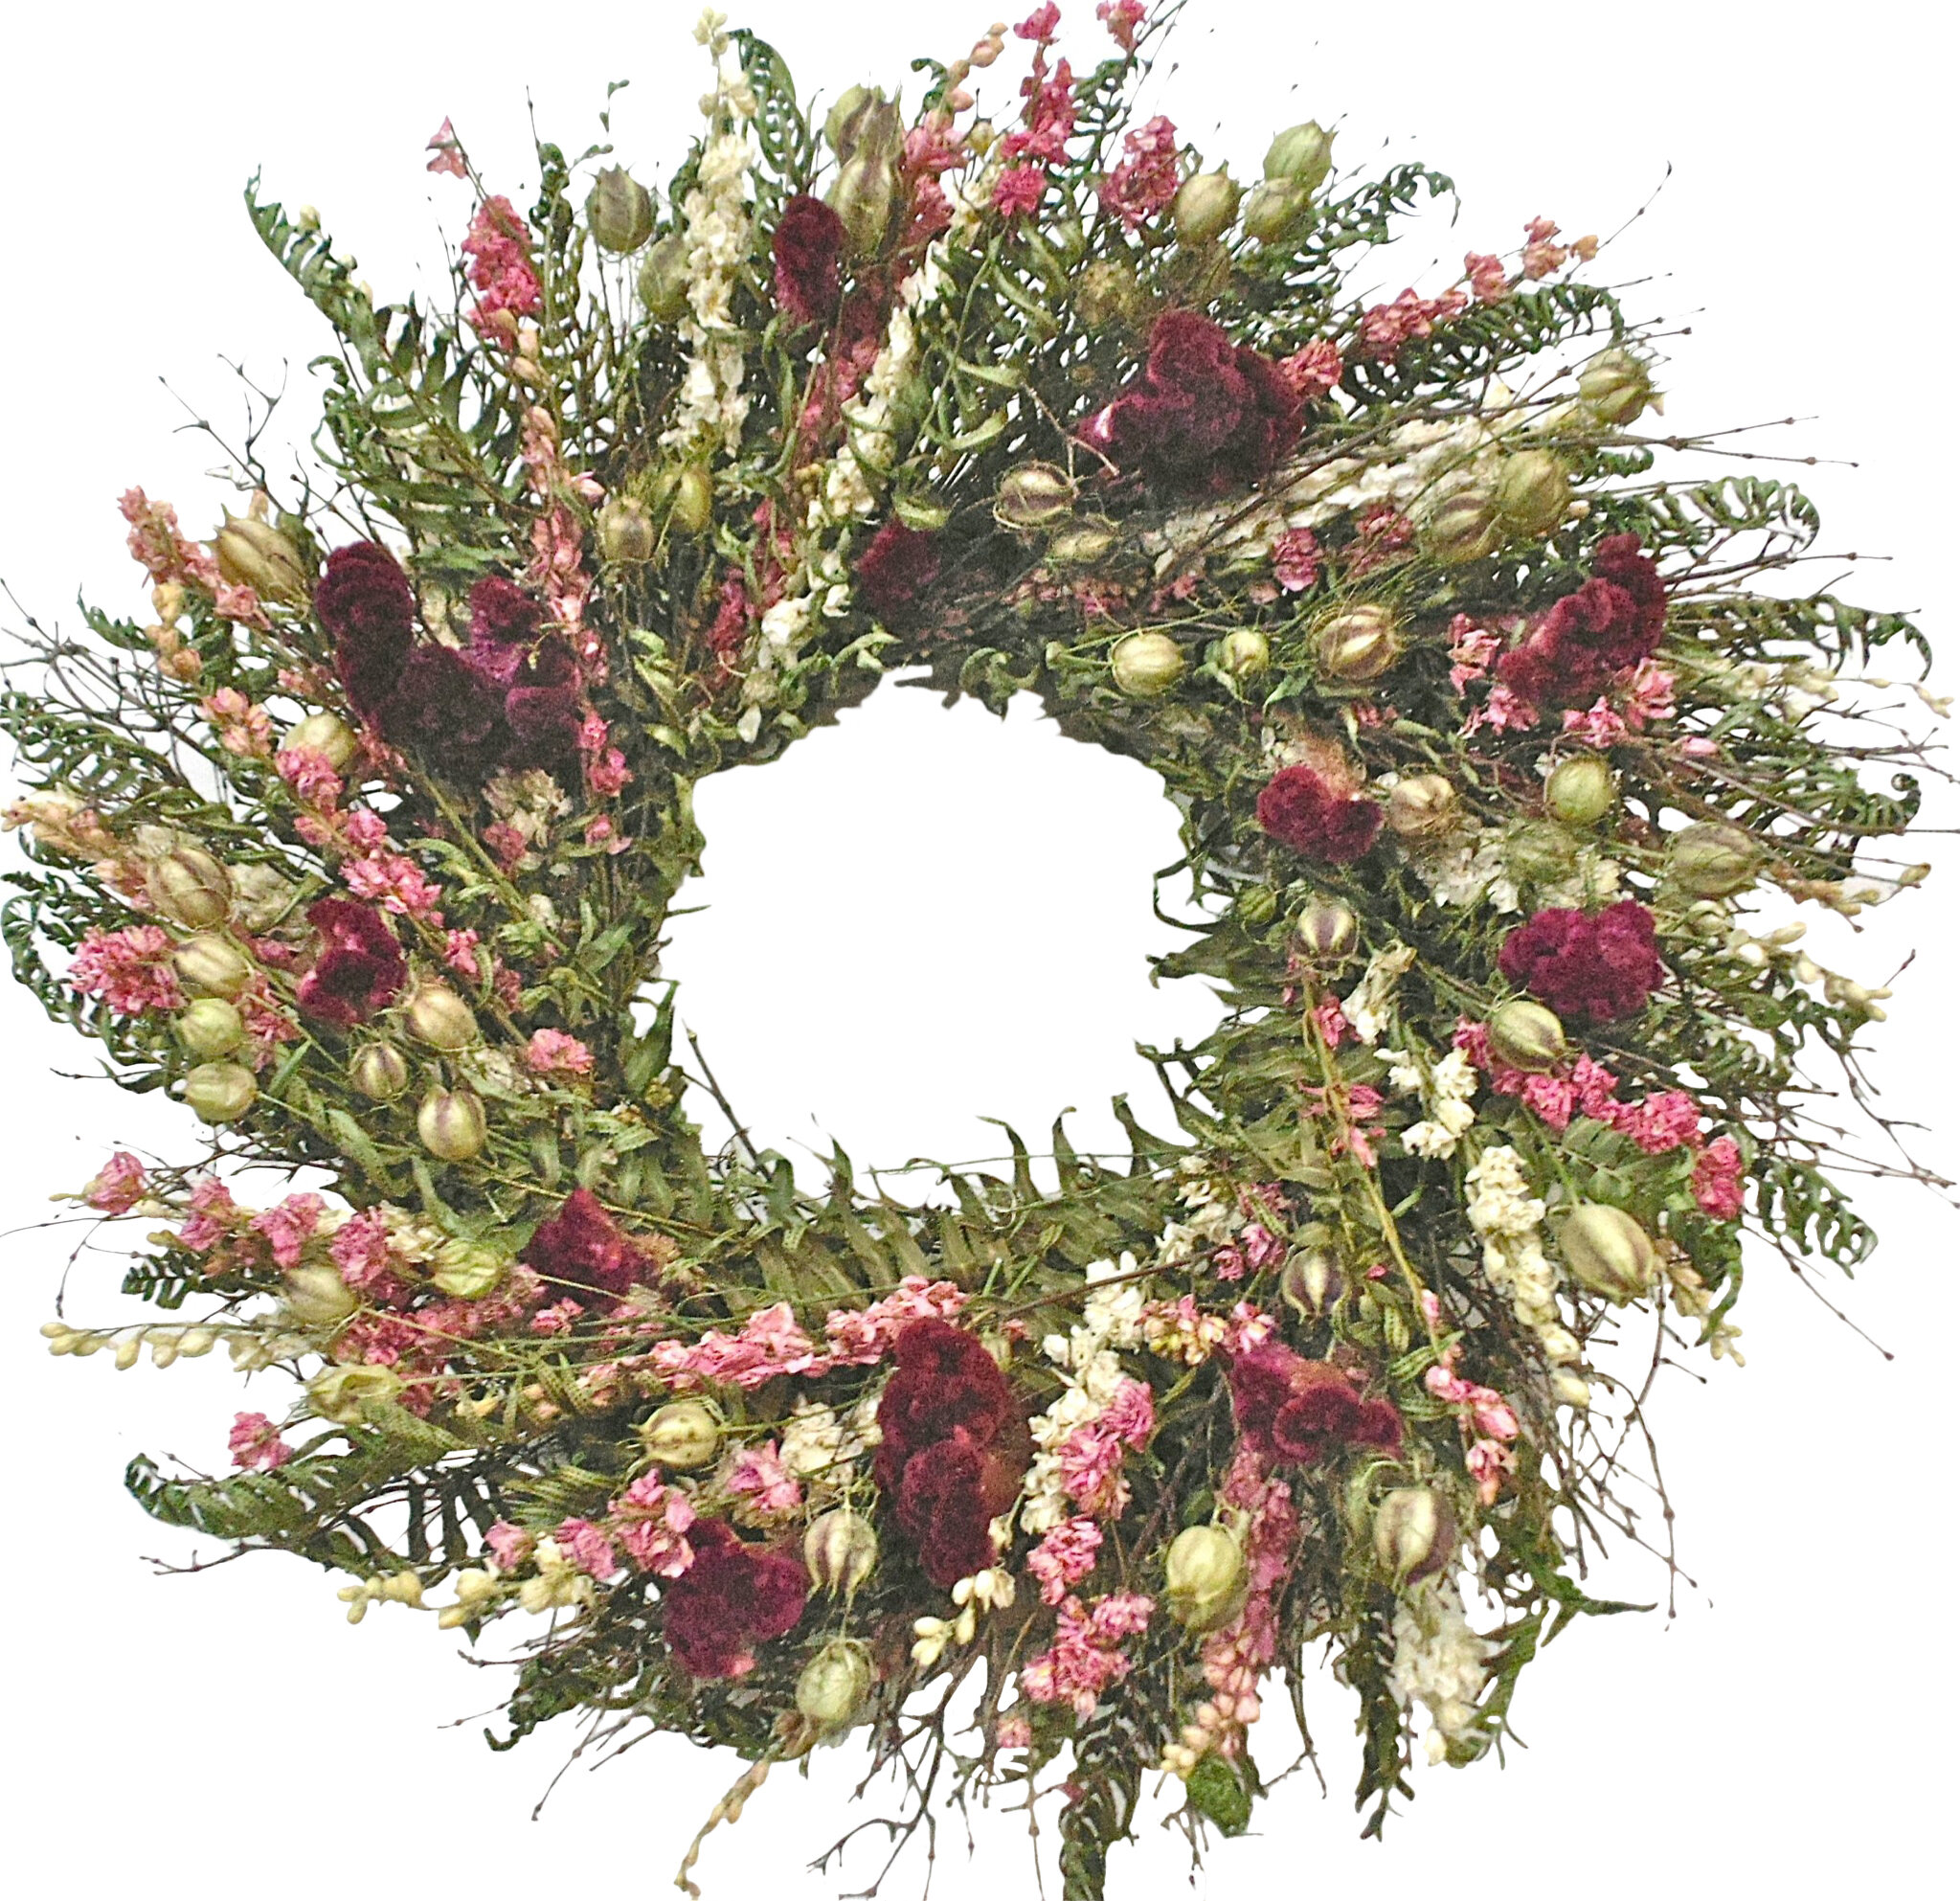 New Primitive Cottage Chic Rustic TWIG GREEN FERN Leaves Candle Ring Wreath